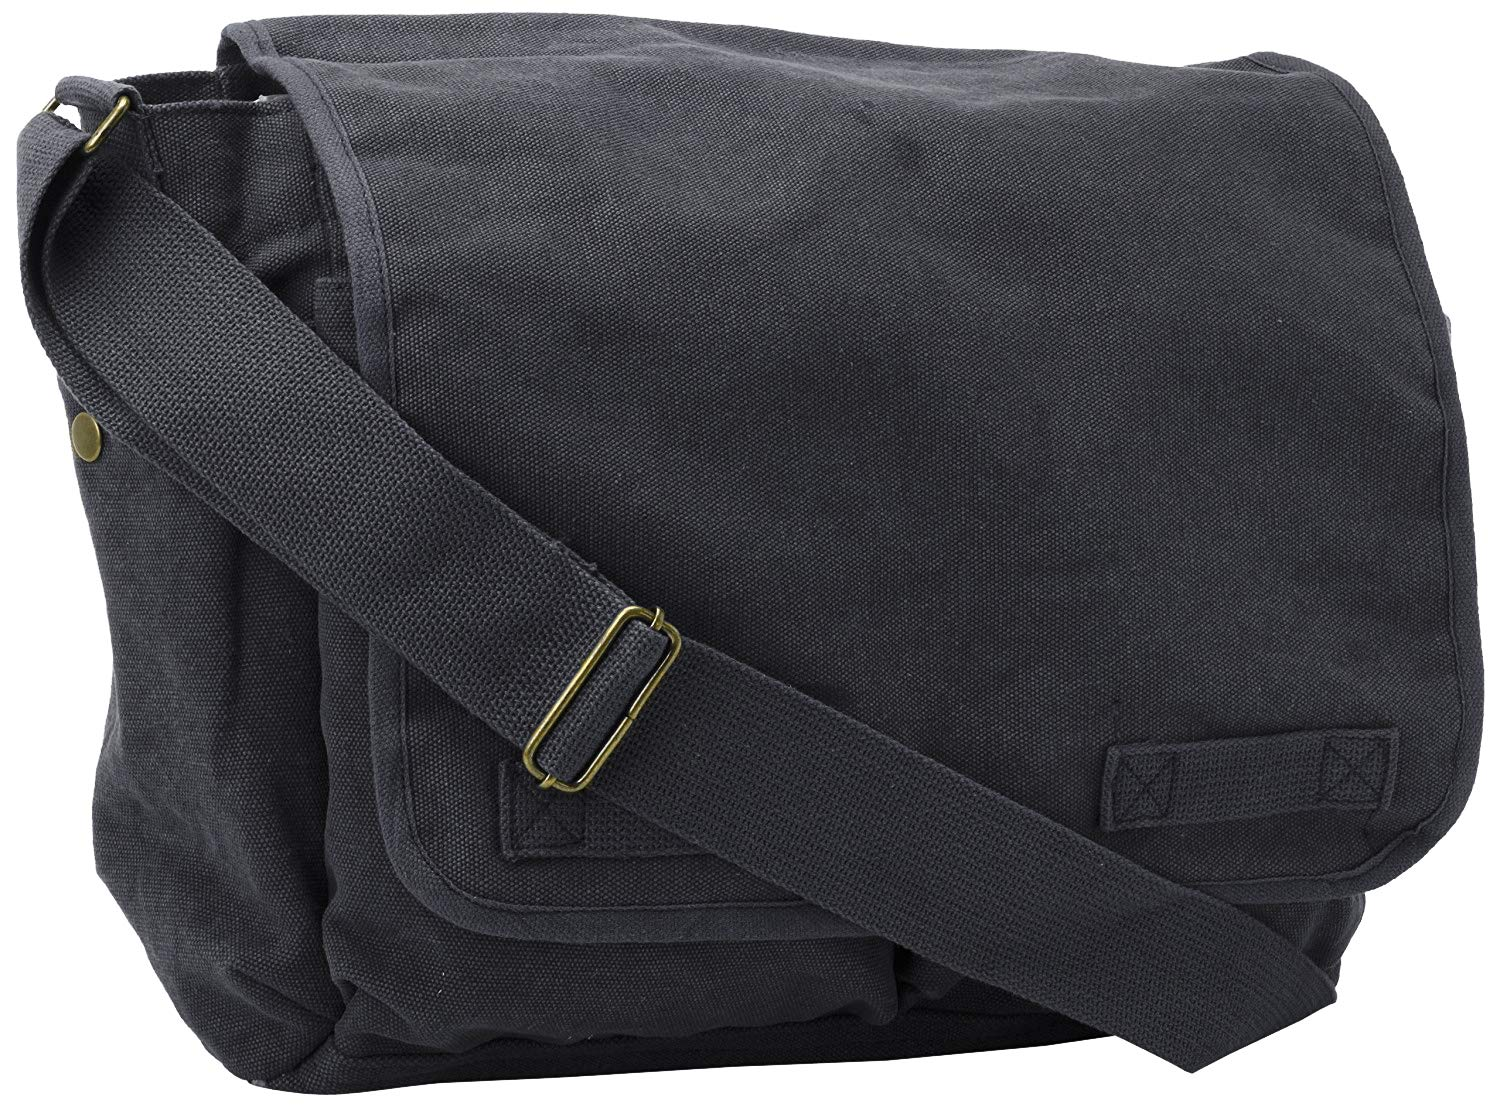 Curb Ramblas Messenger Bag by Victorinox